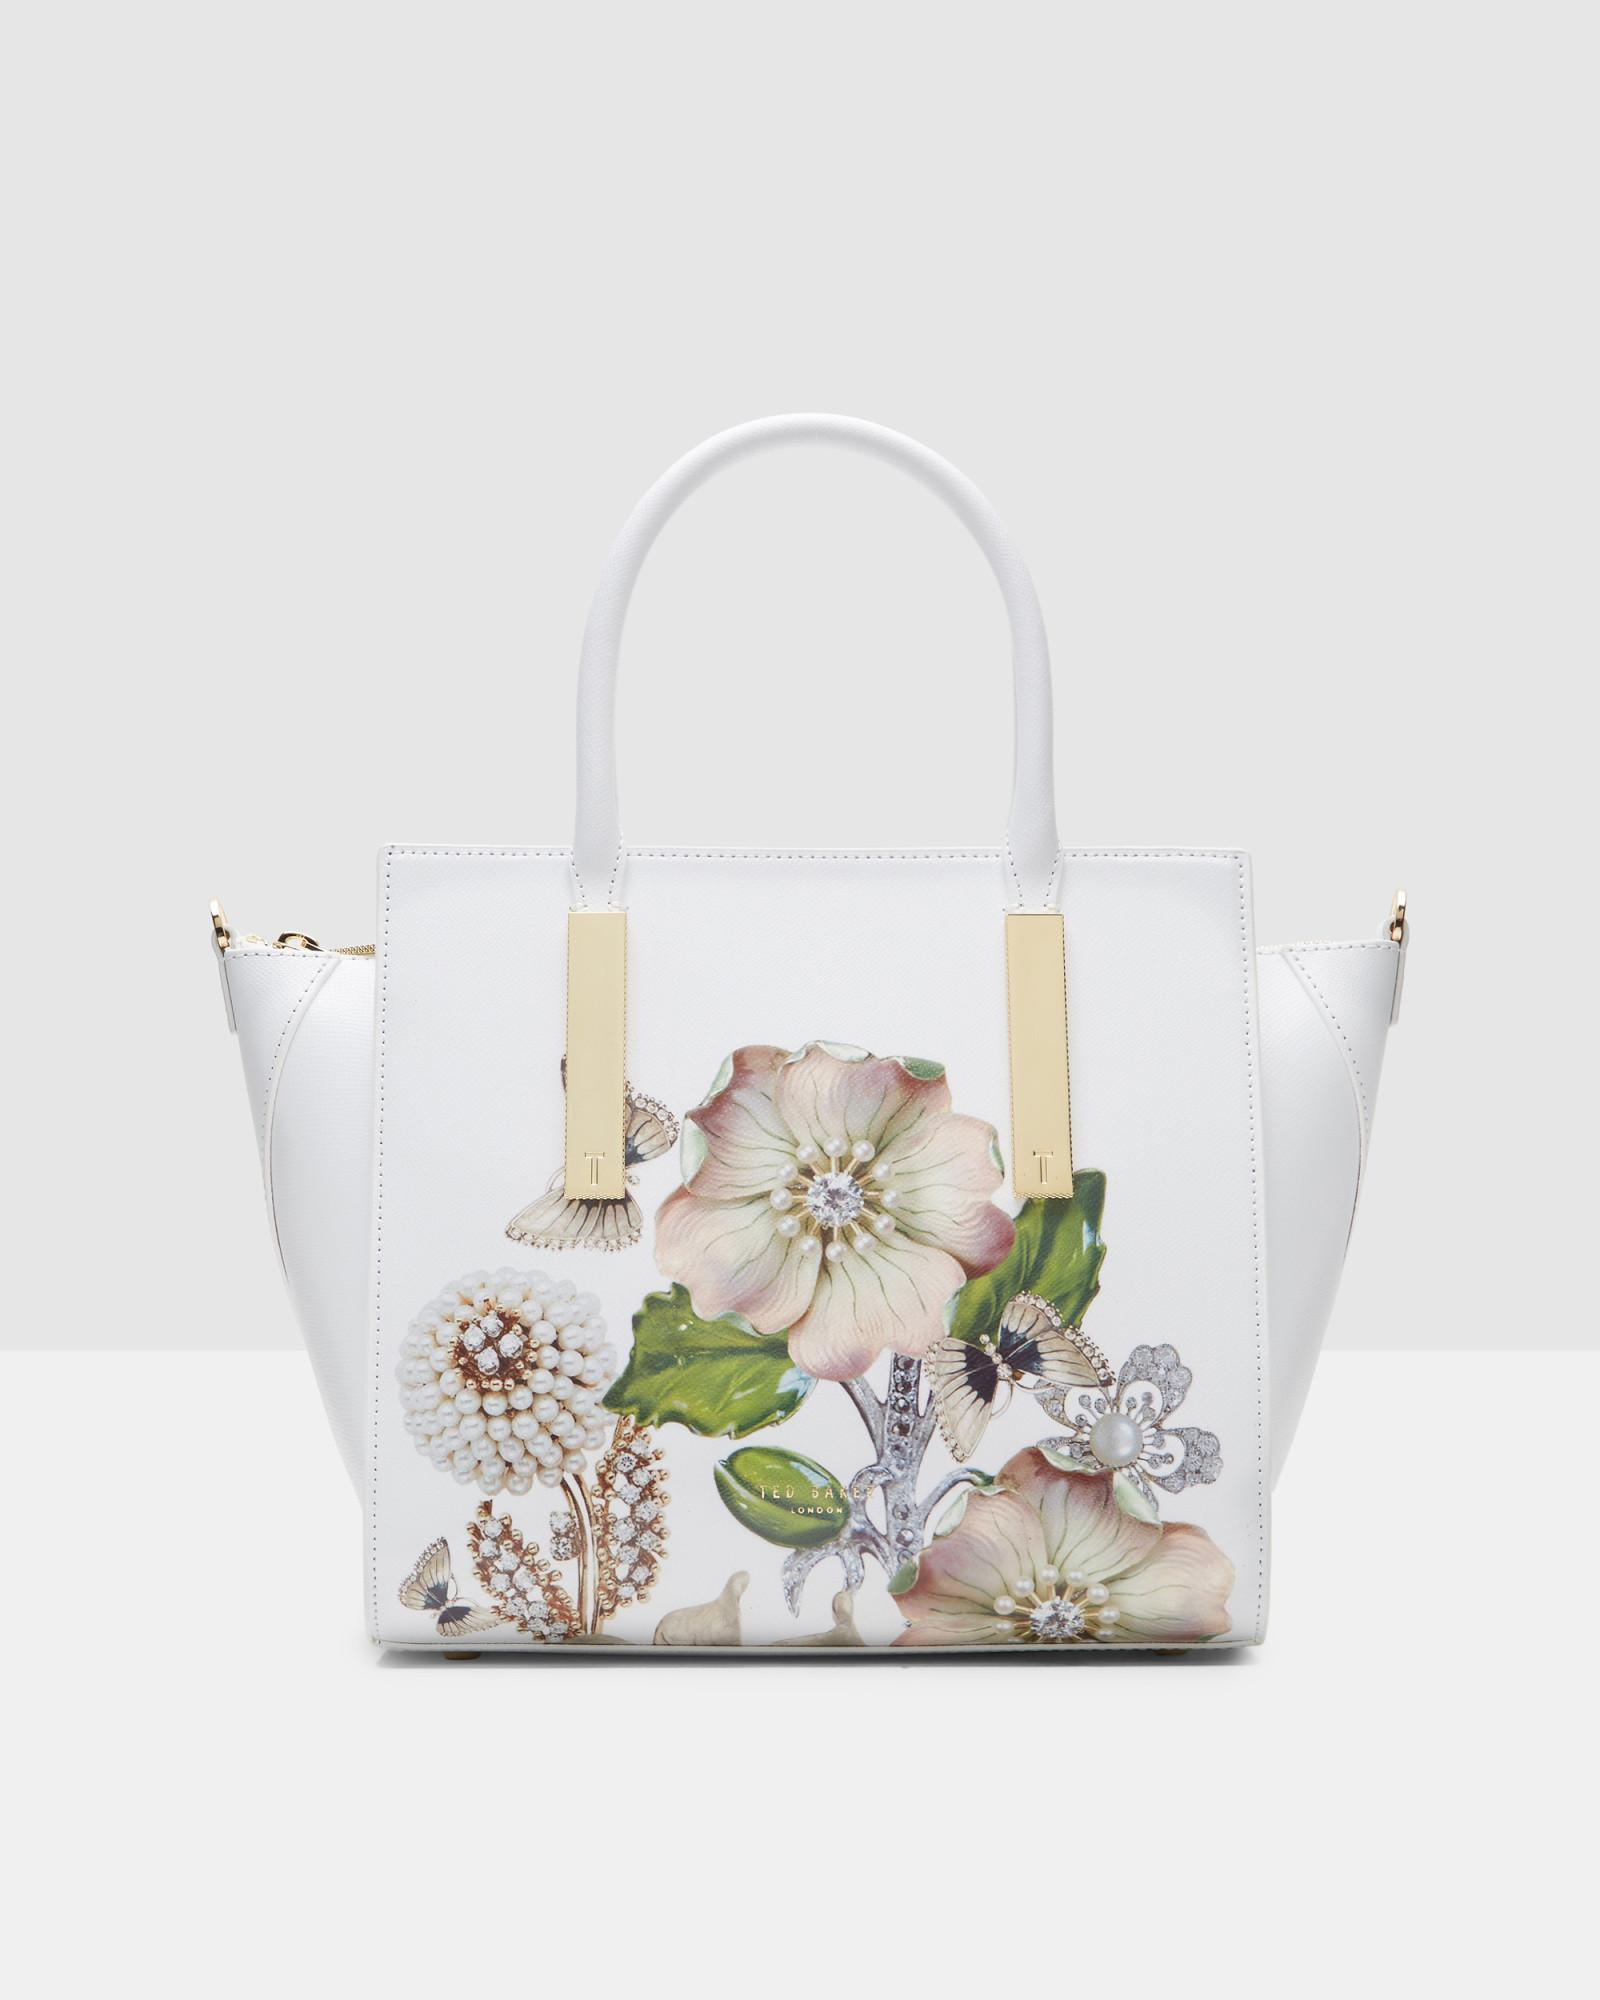 3276c4ff1 Ted Baker Gem Gardens Leather Tote Bag in White - Lyst